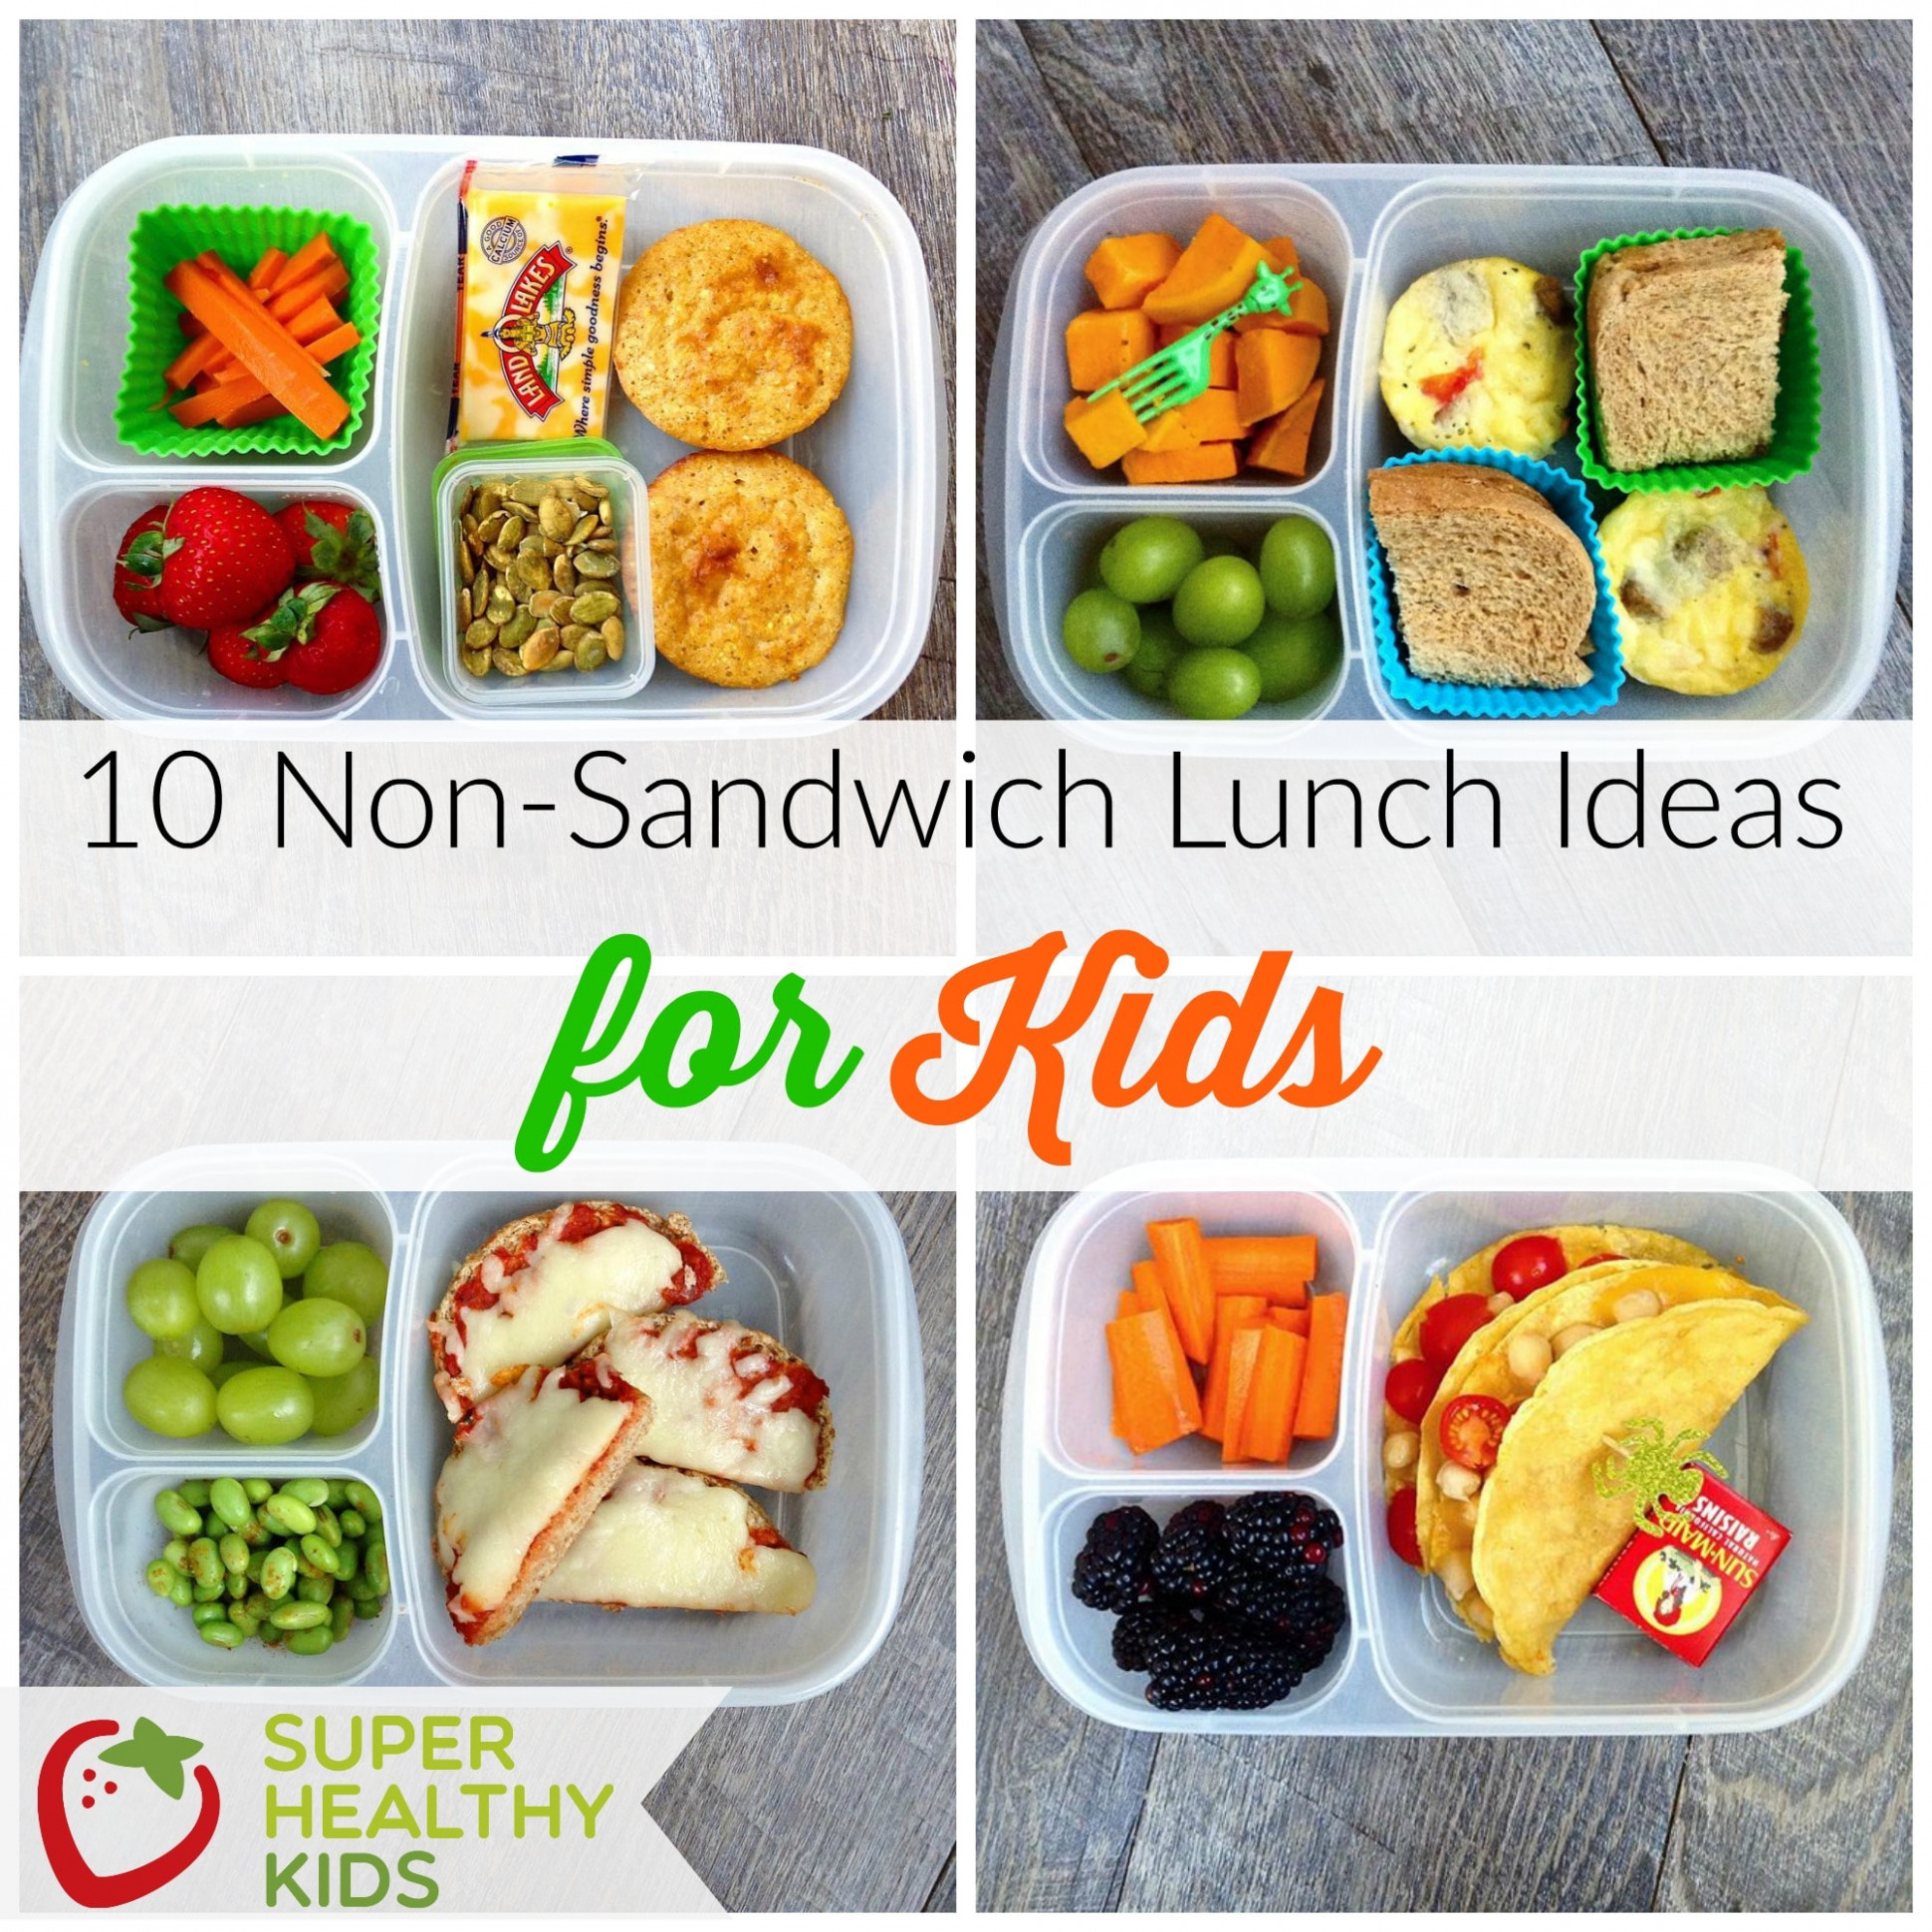 10 Non-Sandwich Lunch Ideas for Kids | Healthy Ideas for Kids - recipes for lunch healthy